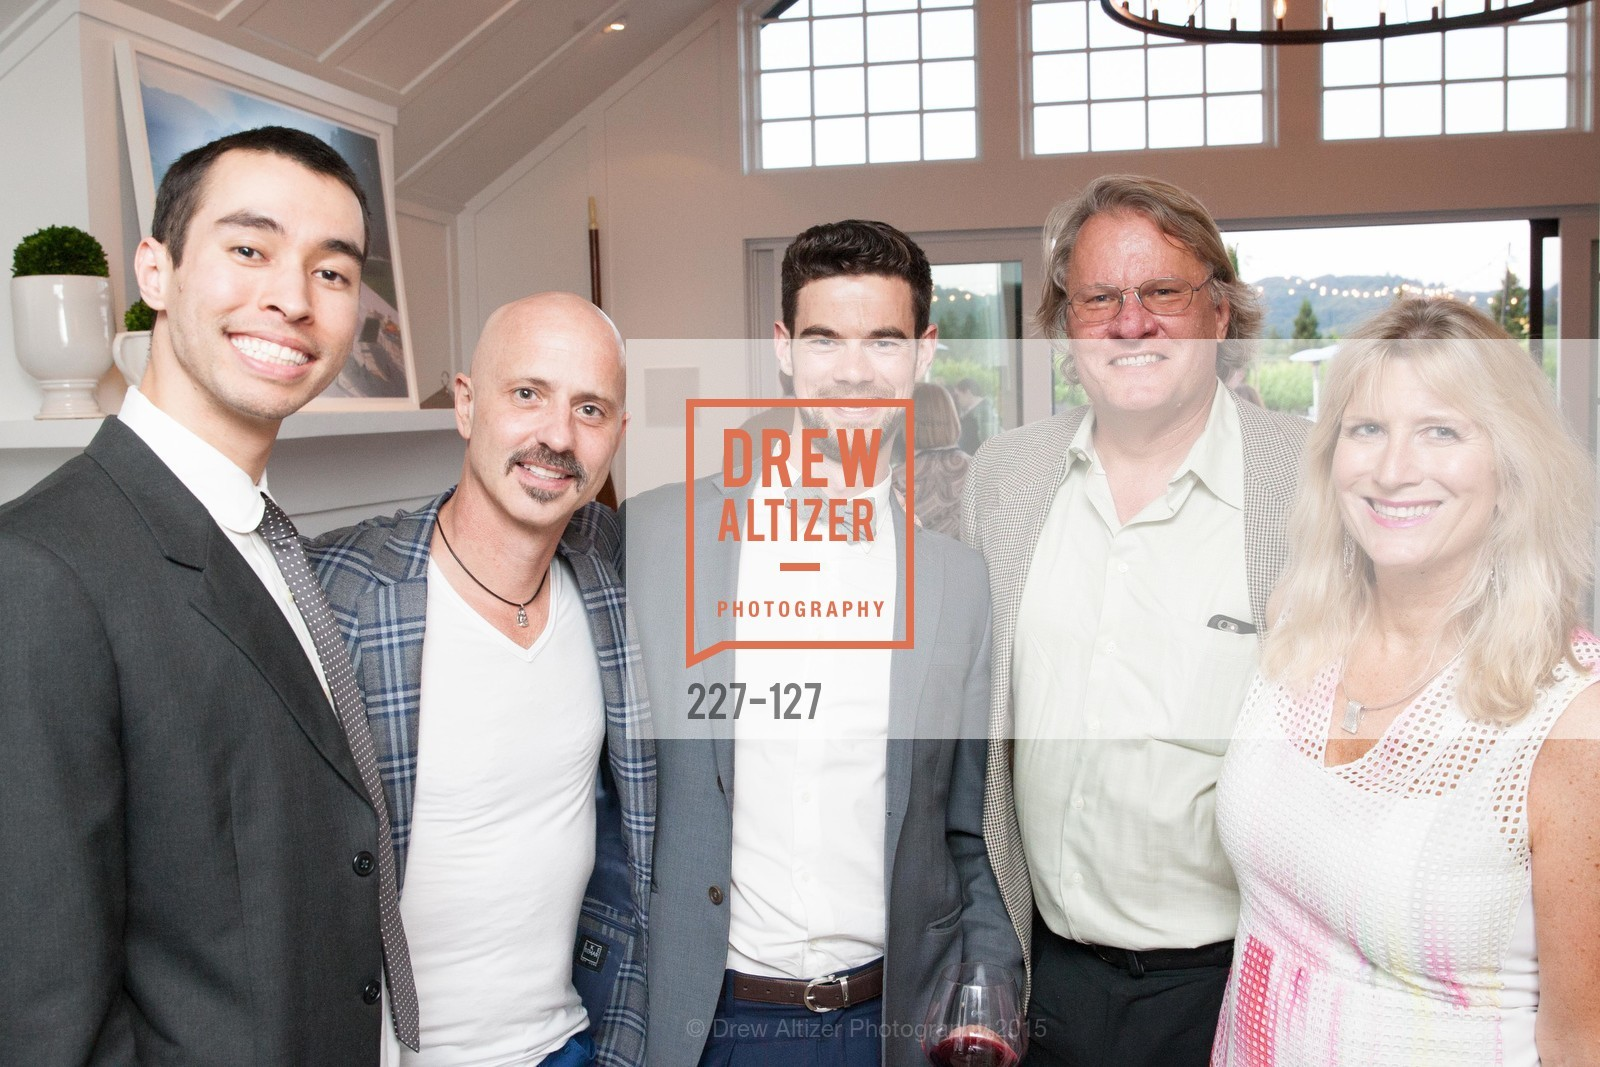 James Williams, Brian Boitano, Scott Sitrin, Sean Lincoln, Holly House, An Evening in the Vineyard hosted by JACK CALHOUN & TRENT NORRIS, Jack Calhoun & Trent Norris Vineyard. 3393 Dry Creek Road, Healdsburg CA 95448, May 22nd, 2015,Drew Altizer, Drew Altizer Photography, full-service agency, private events, San Francisco photographer, photographer california